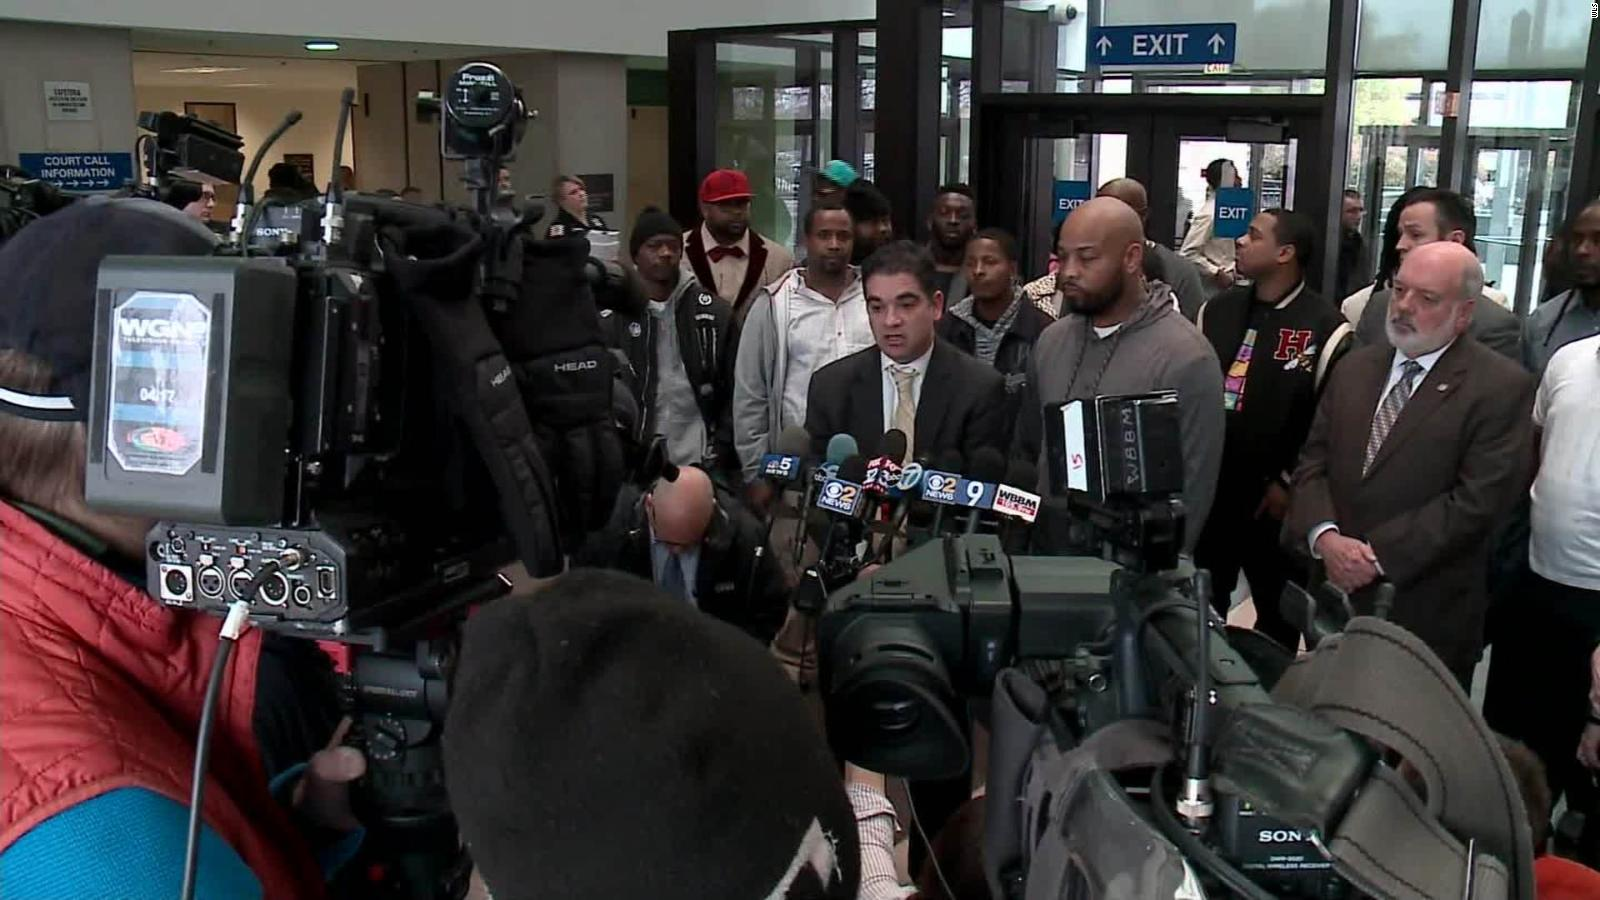 15 men exonerated in cases linked to corrupt Chicago cop - CNN